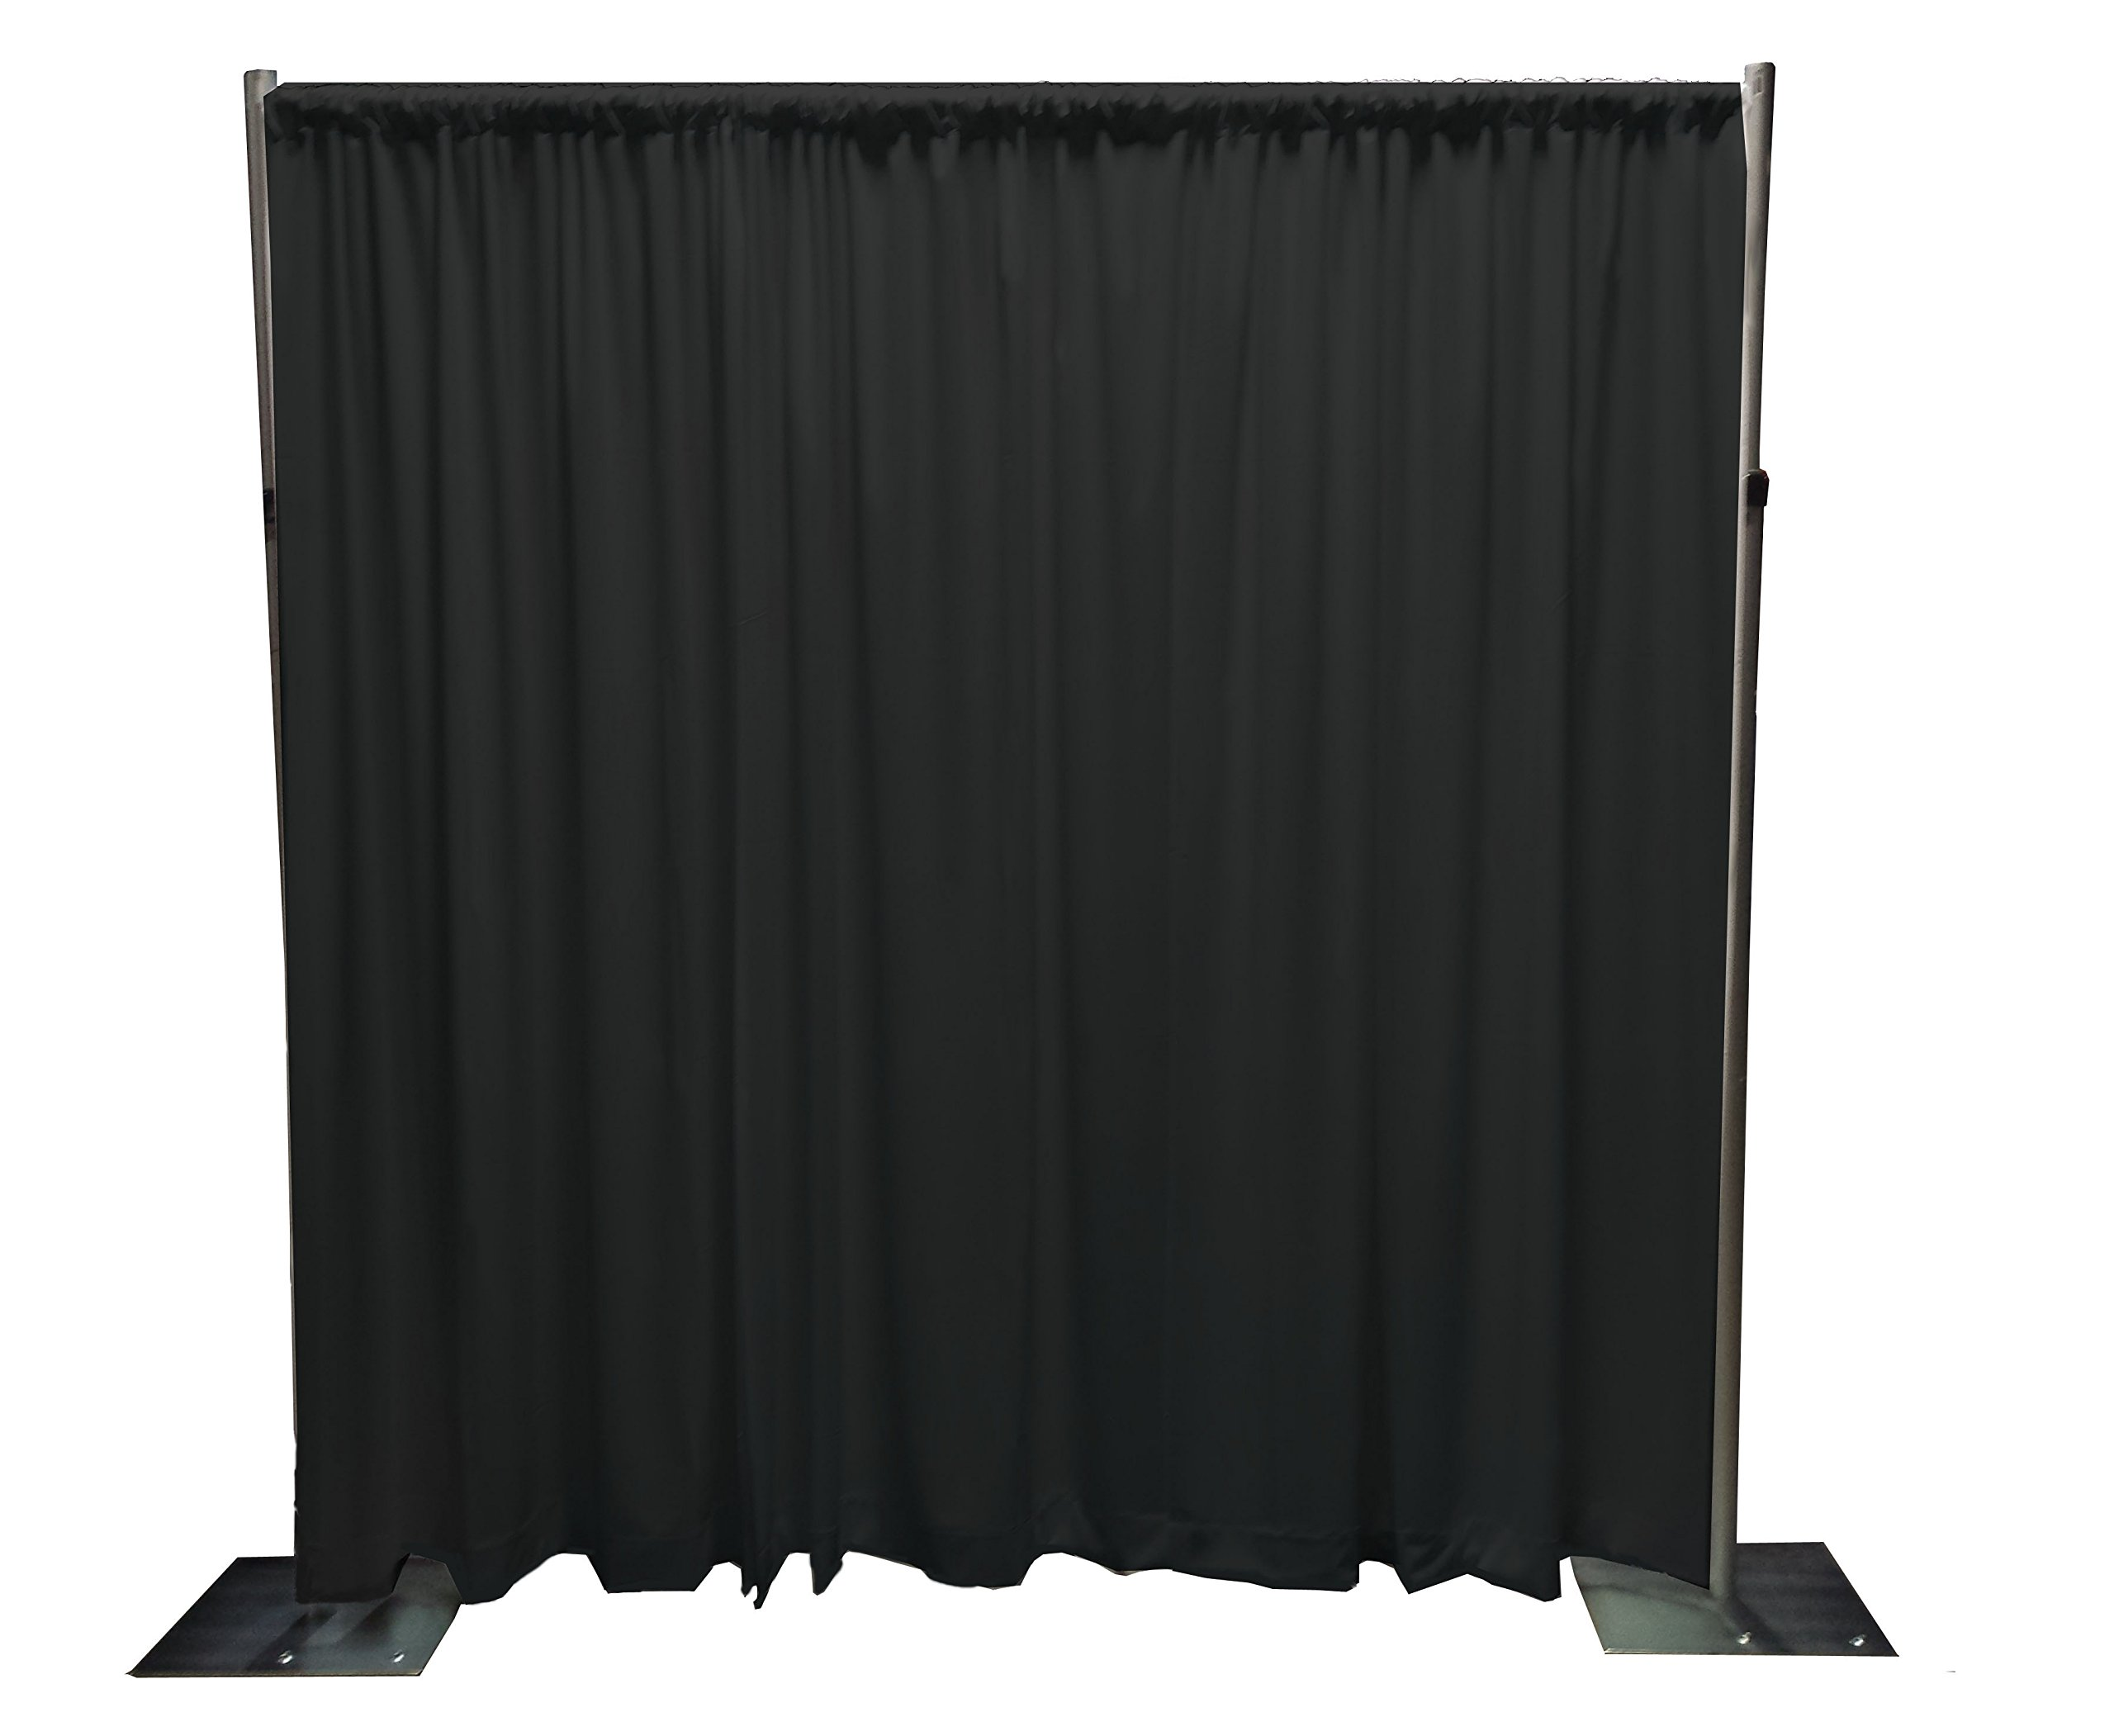 rental allcargos cheap inc tradeshow mississauga drapes and scarborough toronto booth product event off white backdrop tent drape pipe markham rentals